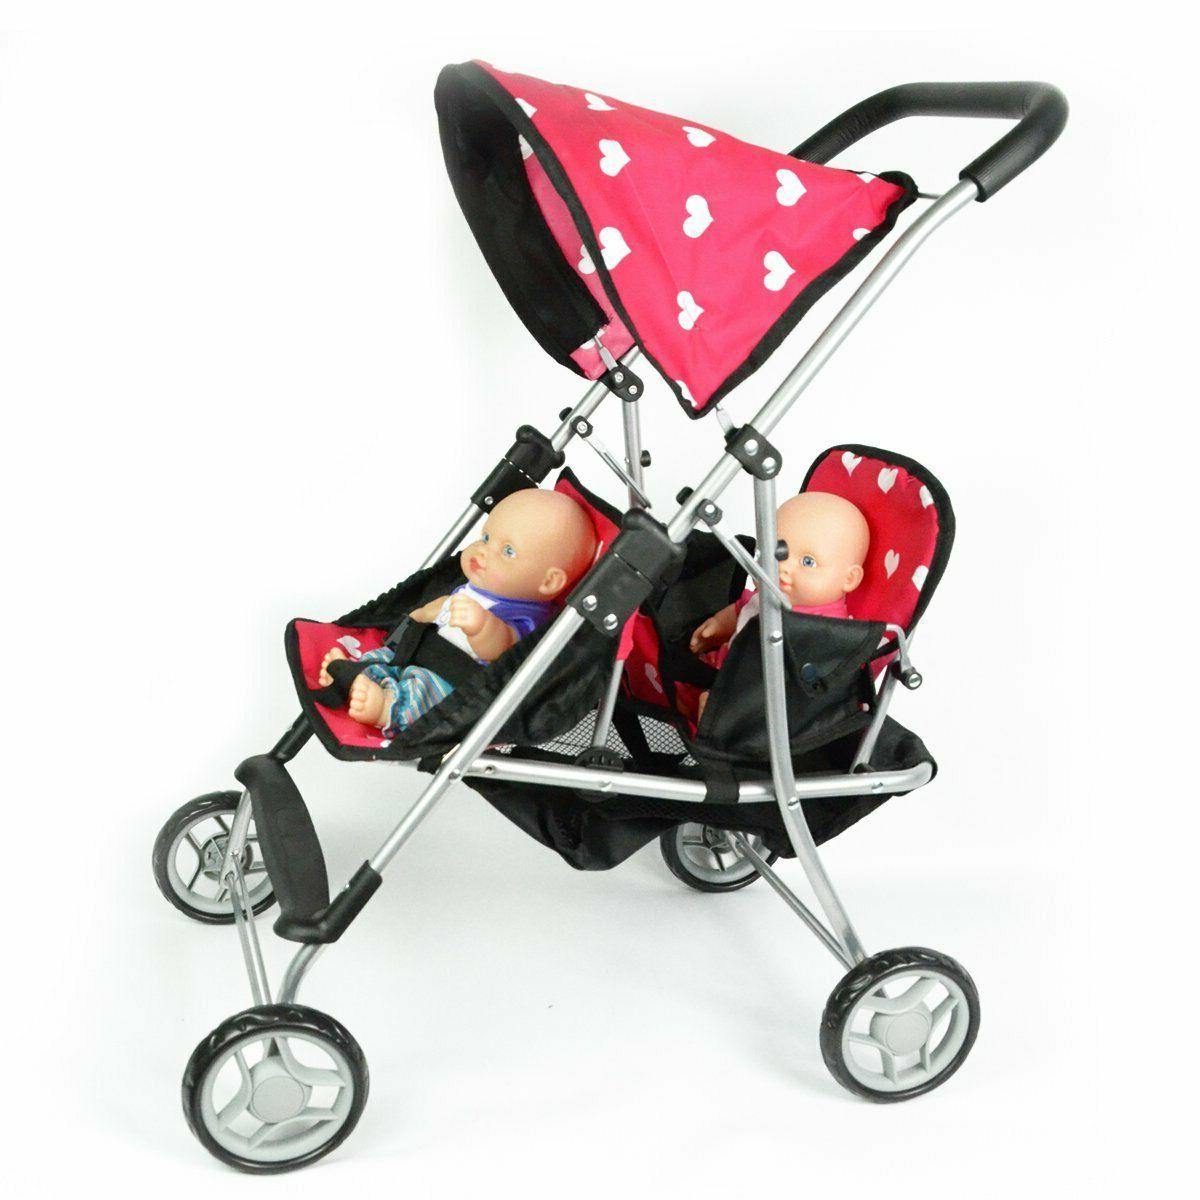 Baby Jogger City Go Infant Car Seat Base - Black